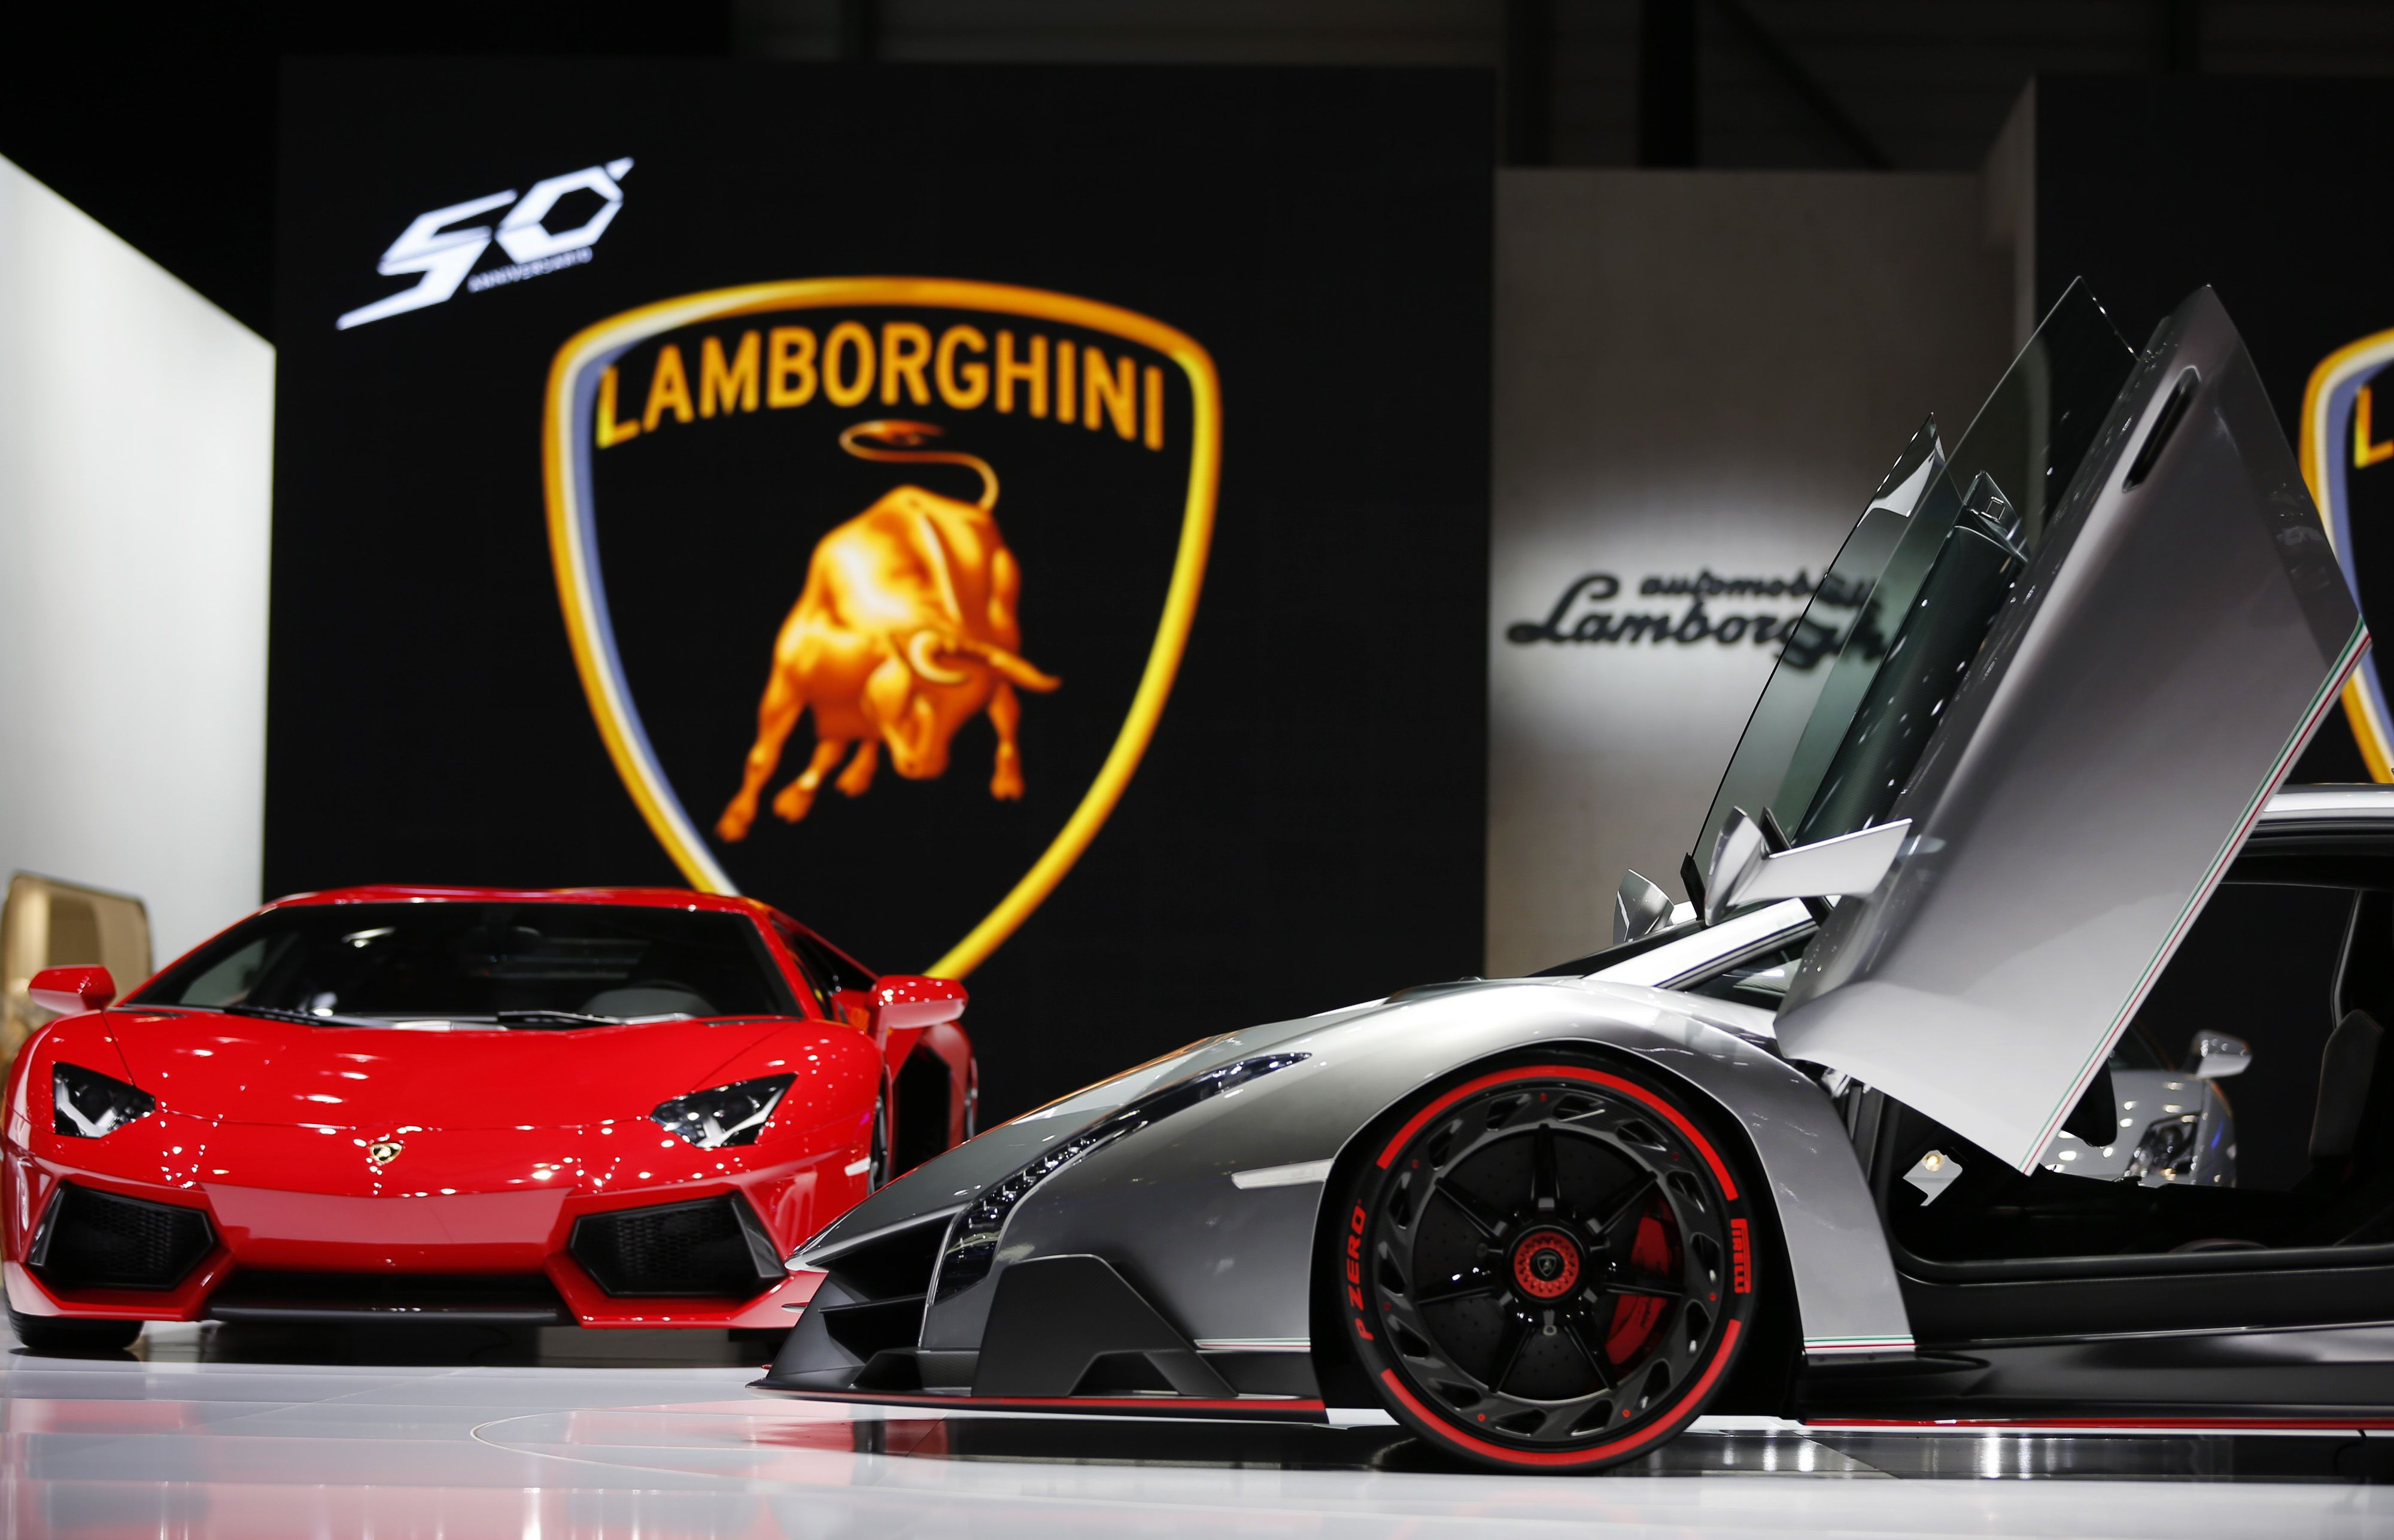 the can customs transmission audi including lamborghini from coast new engine with shift veneno wide a choose models roadster west and replica of paddle range package you